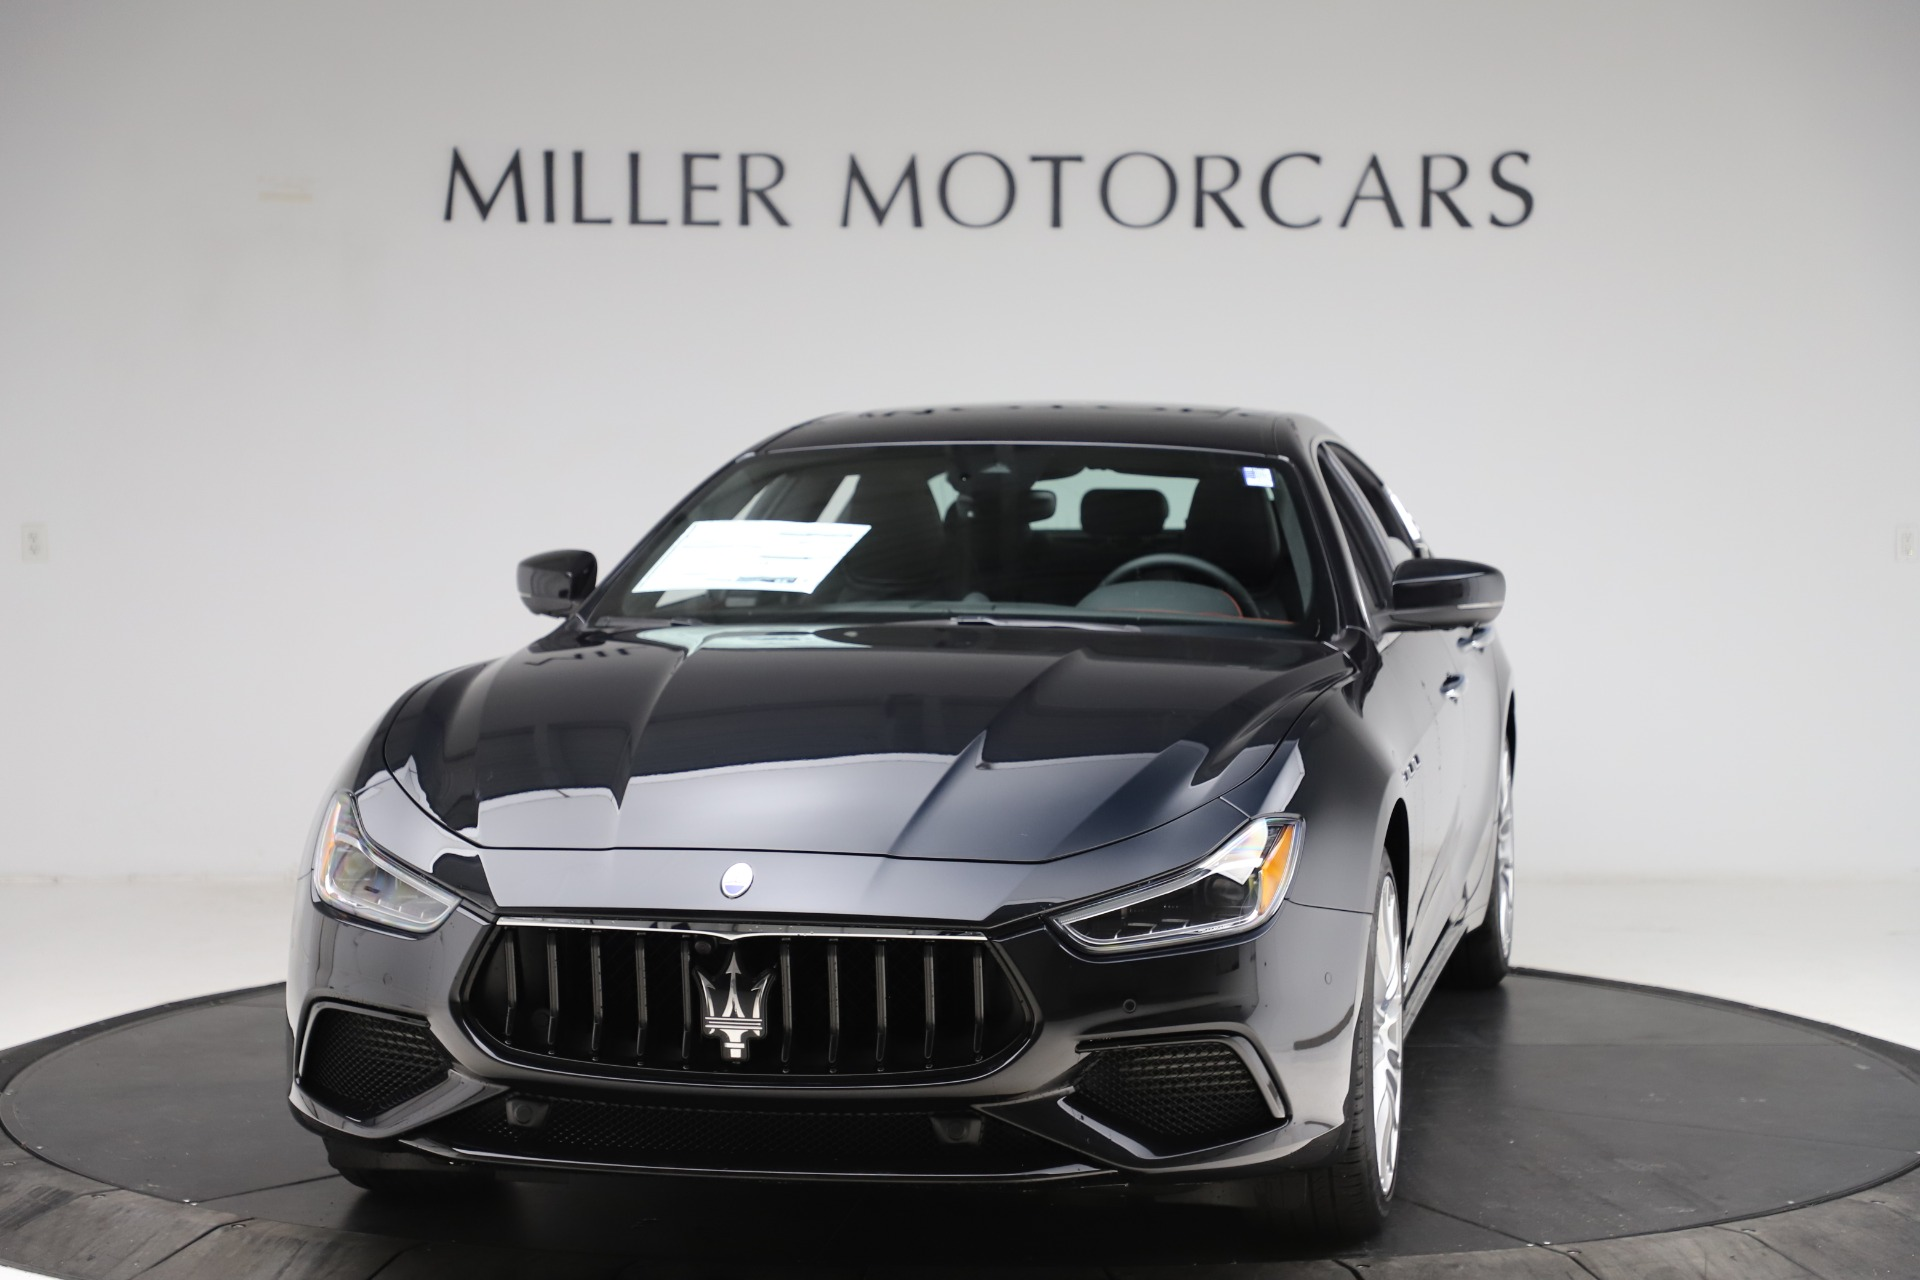 New 2021 Maserati Ghibli S Q4 GranSport for sale $98,035 at Bentley Greenwich in Greenwich CT 06830 1